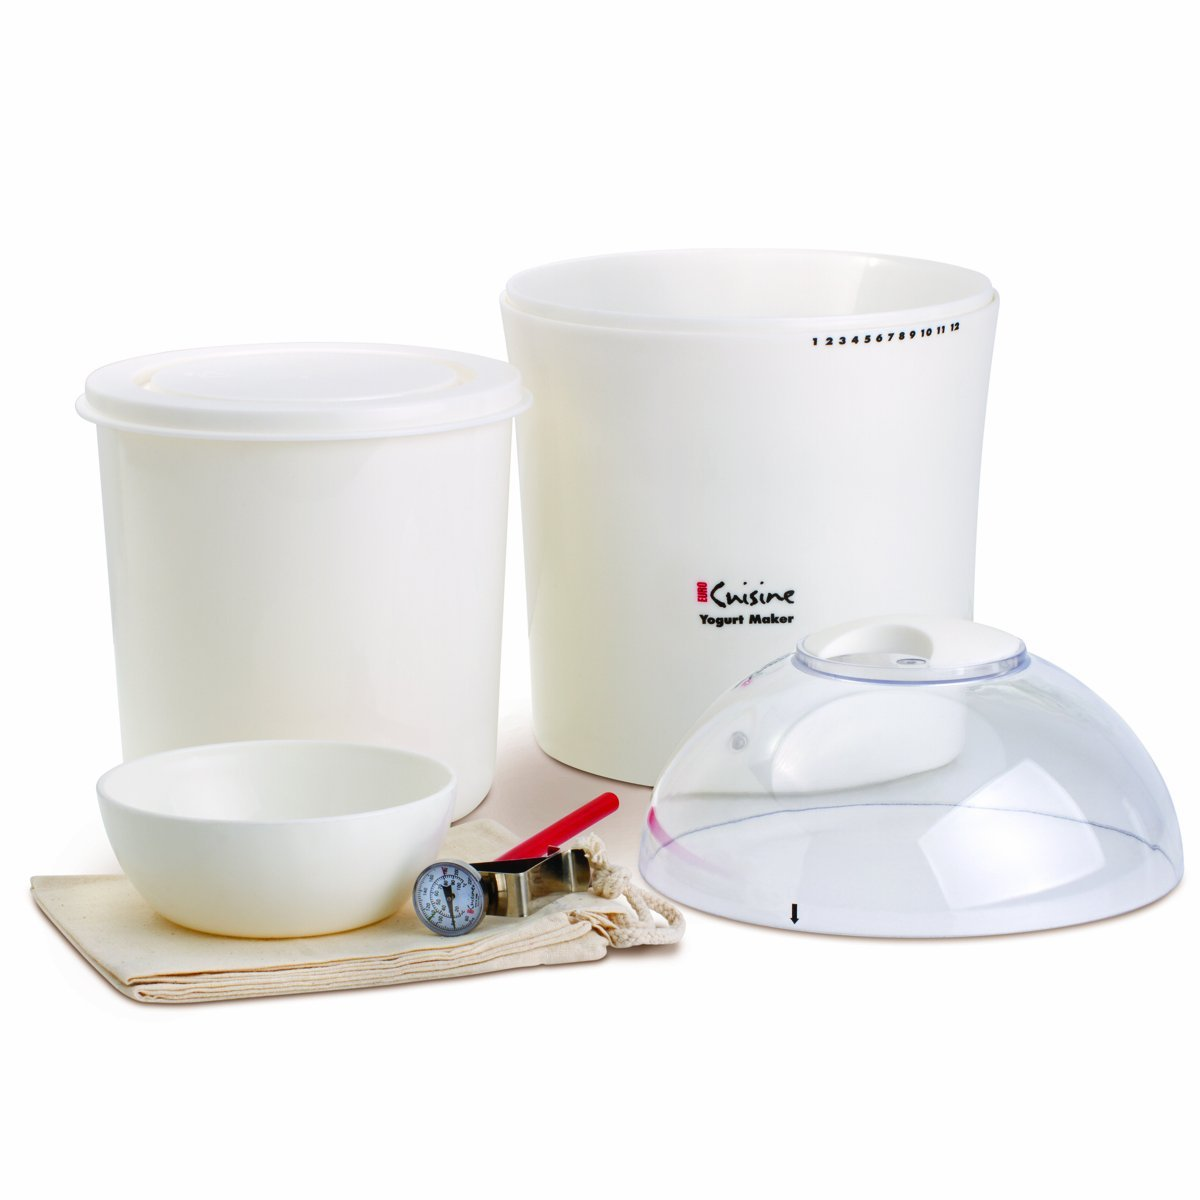 Euro Cuisine YM260 Yogurt Maker Review